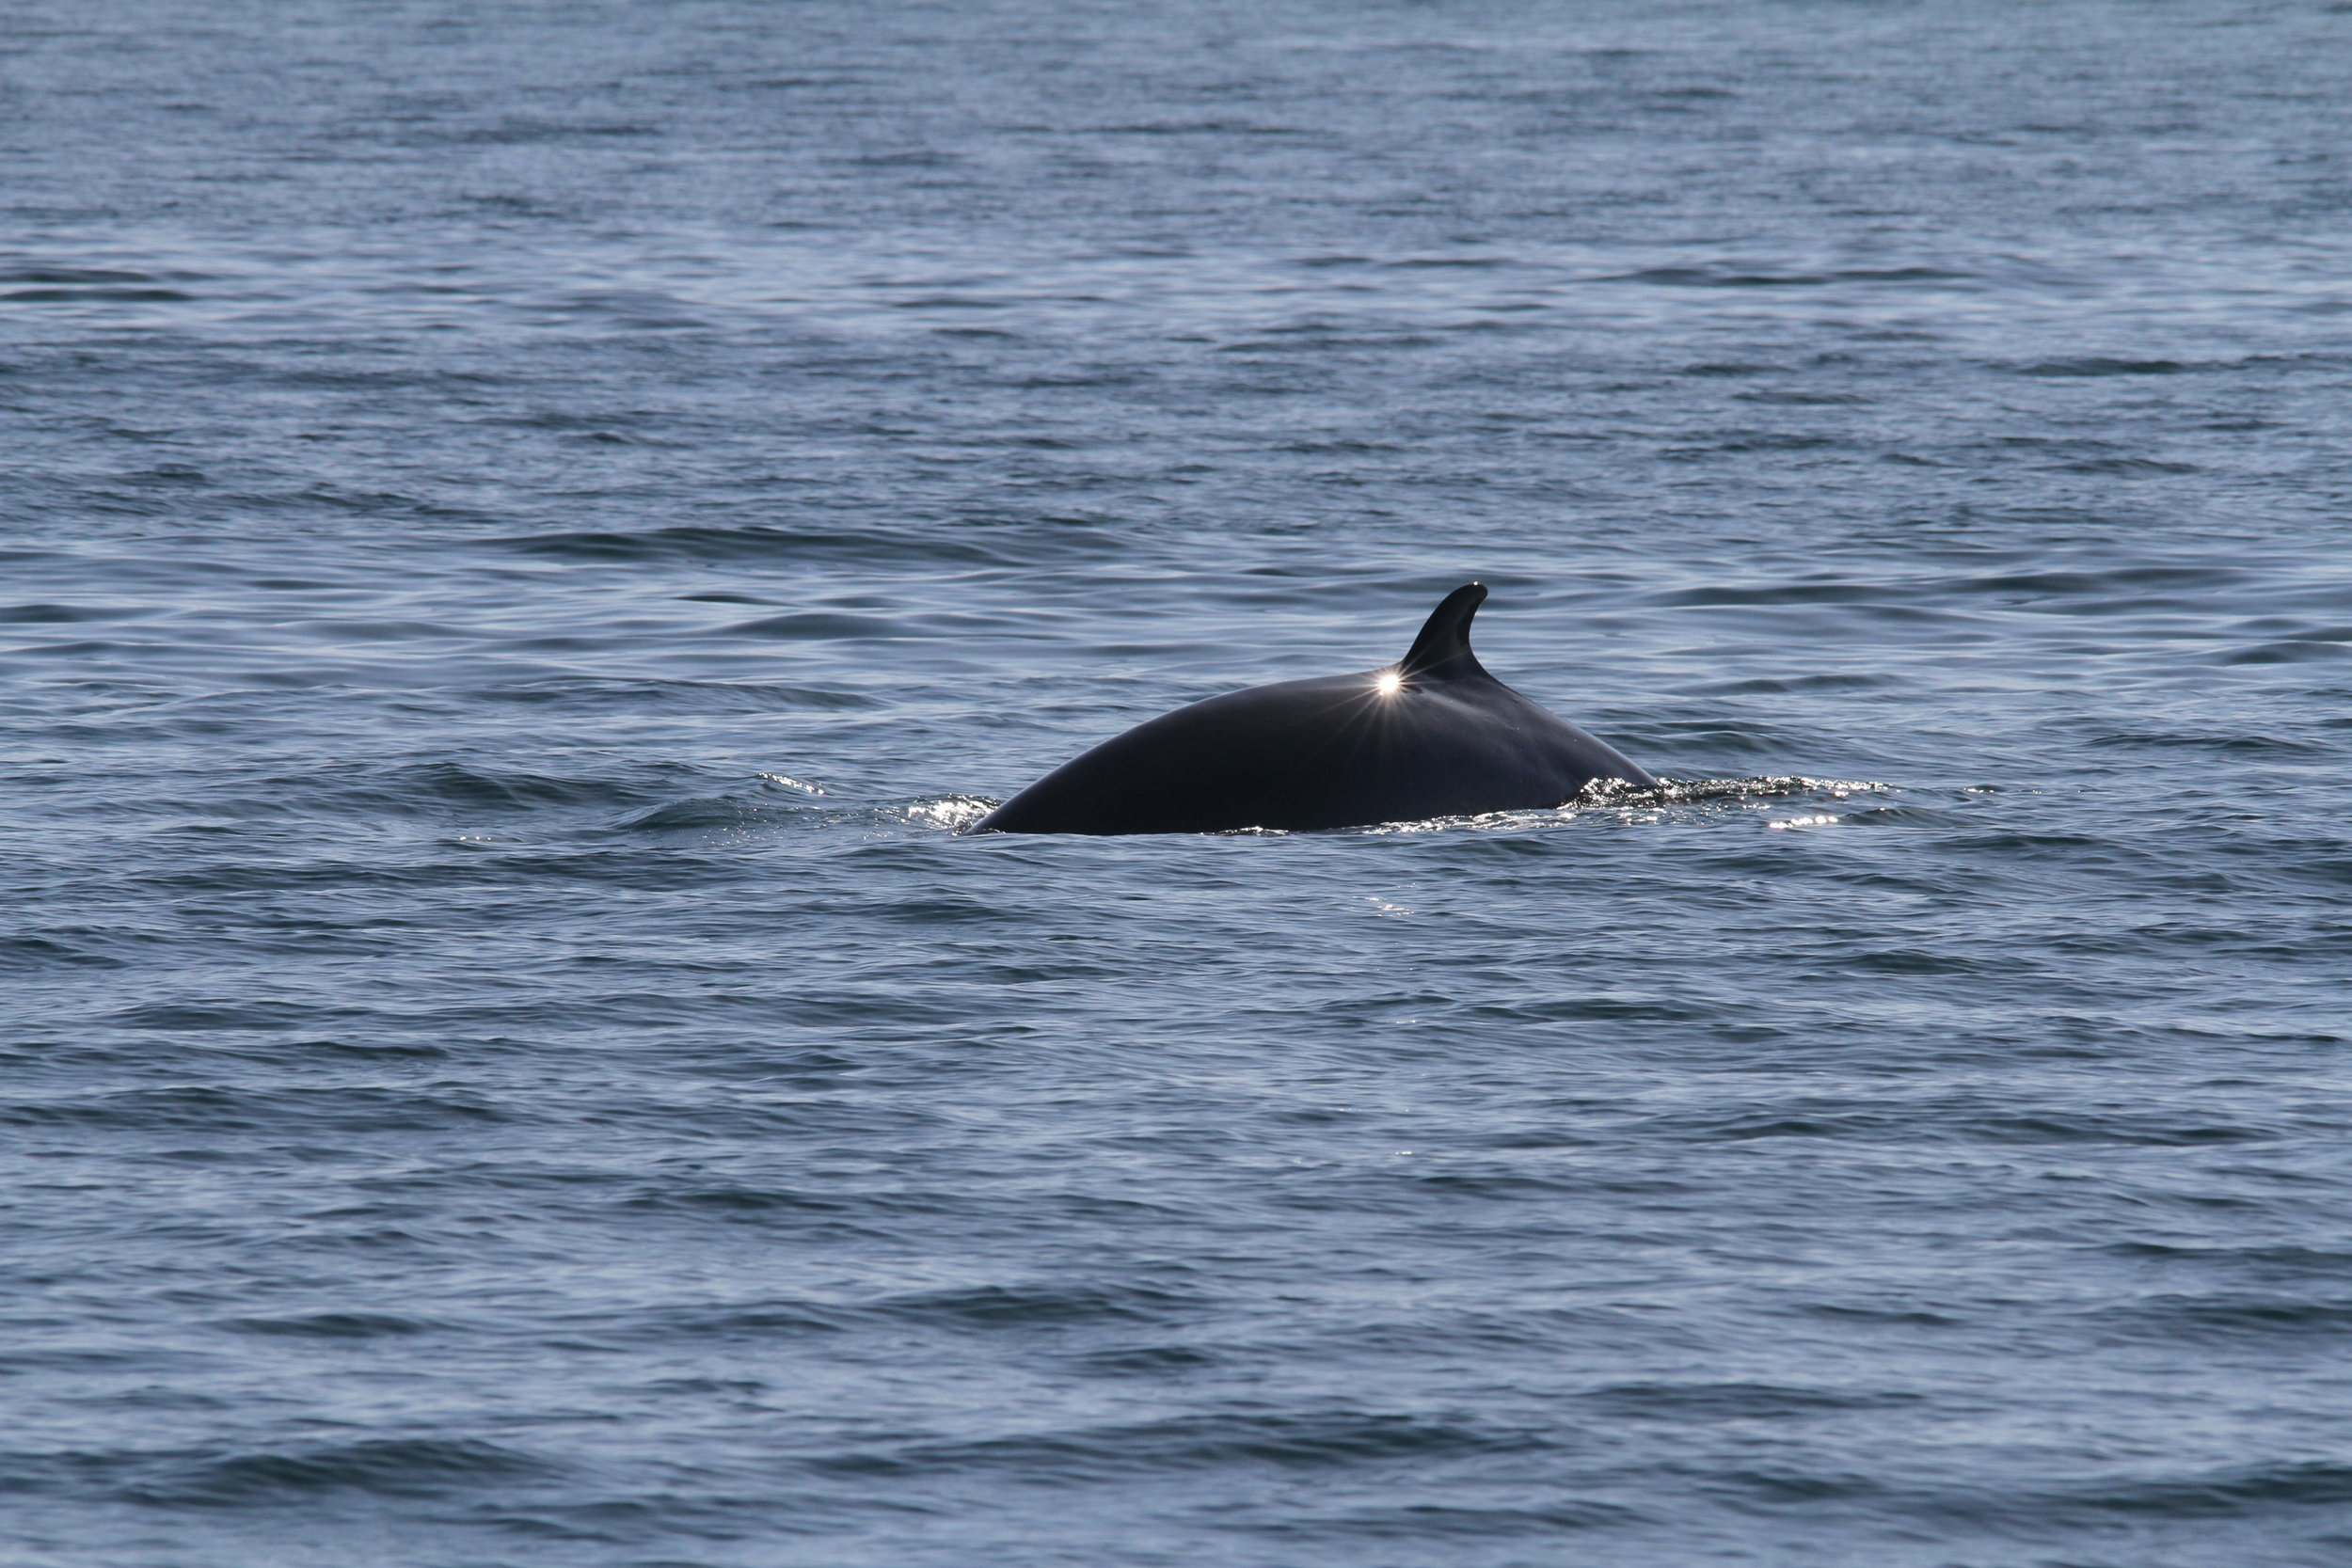 We had to wait until the end of the survey for a minke whale sighting, but what a fantastic sighting it was when one finally did pop up!